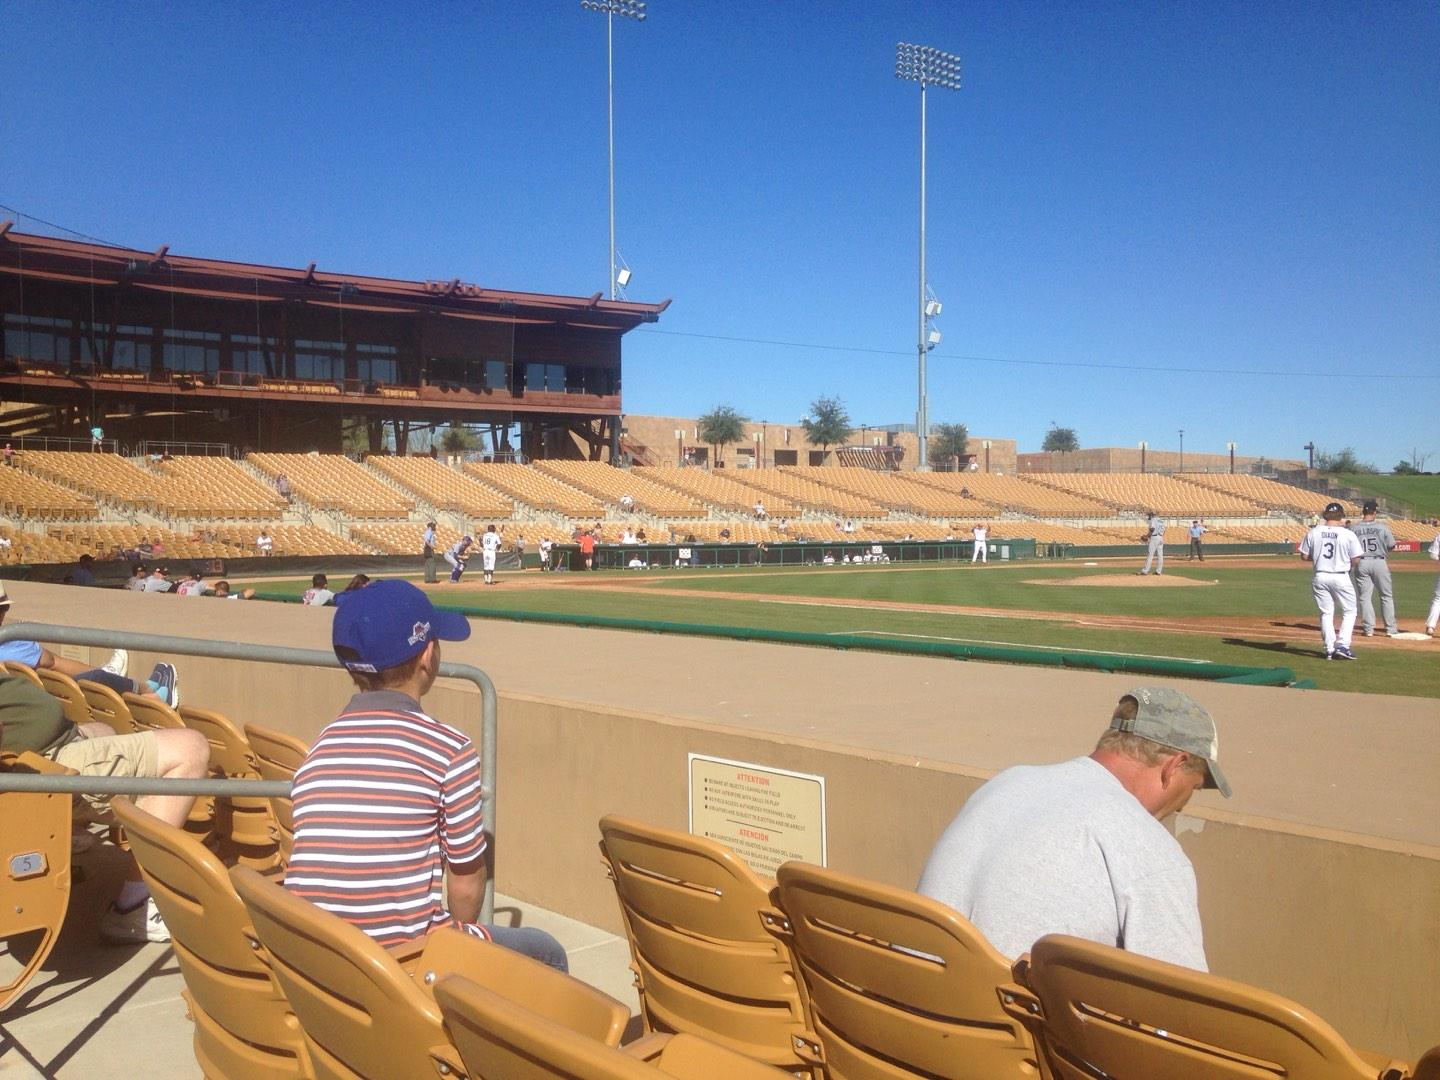 Camelback Ranch Section 6 Row 6 Seat 6